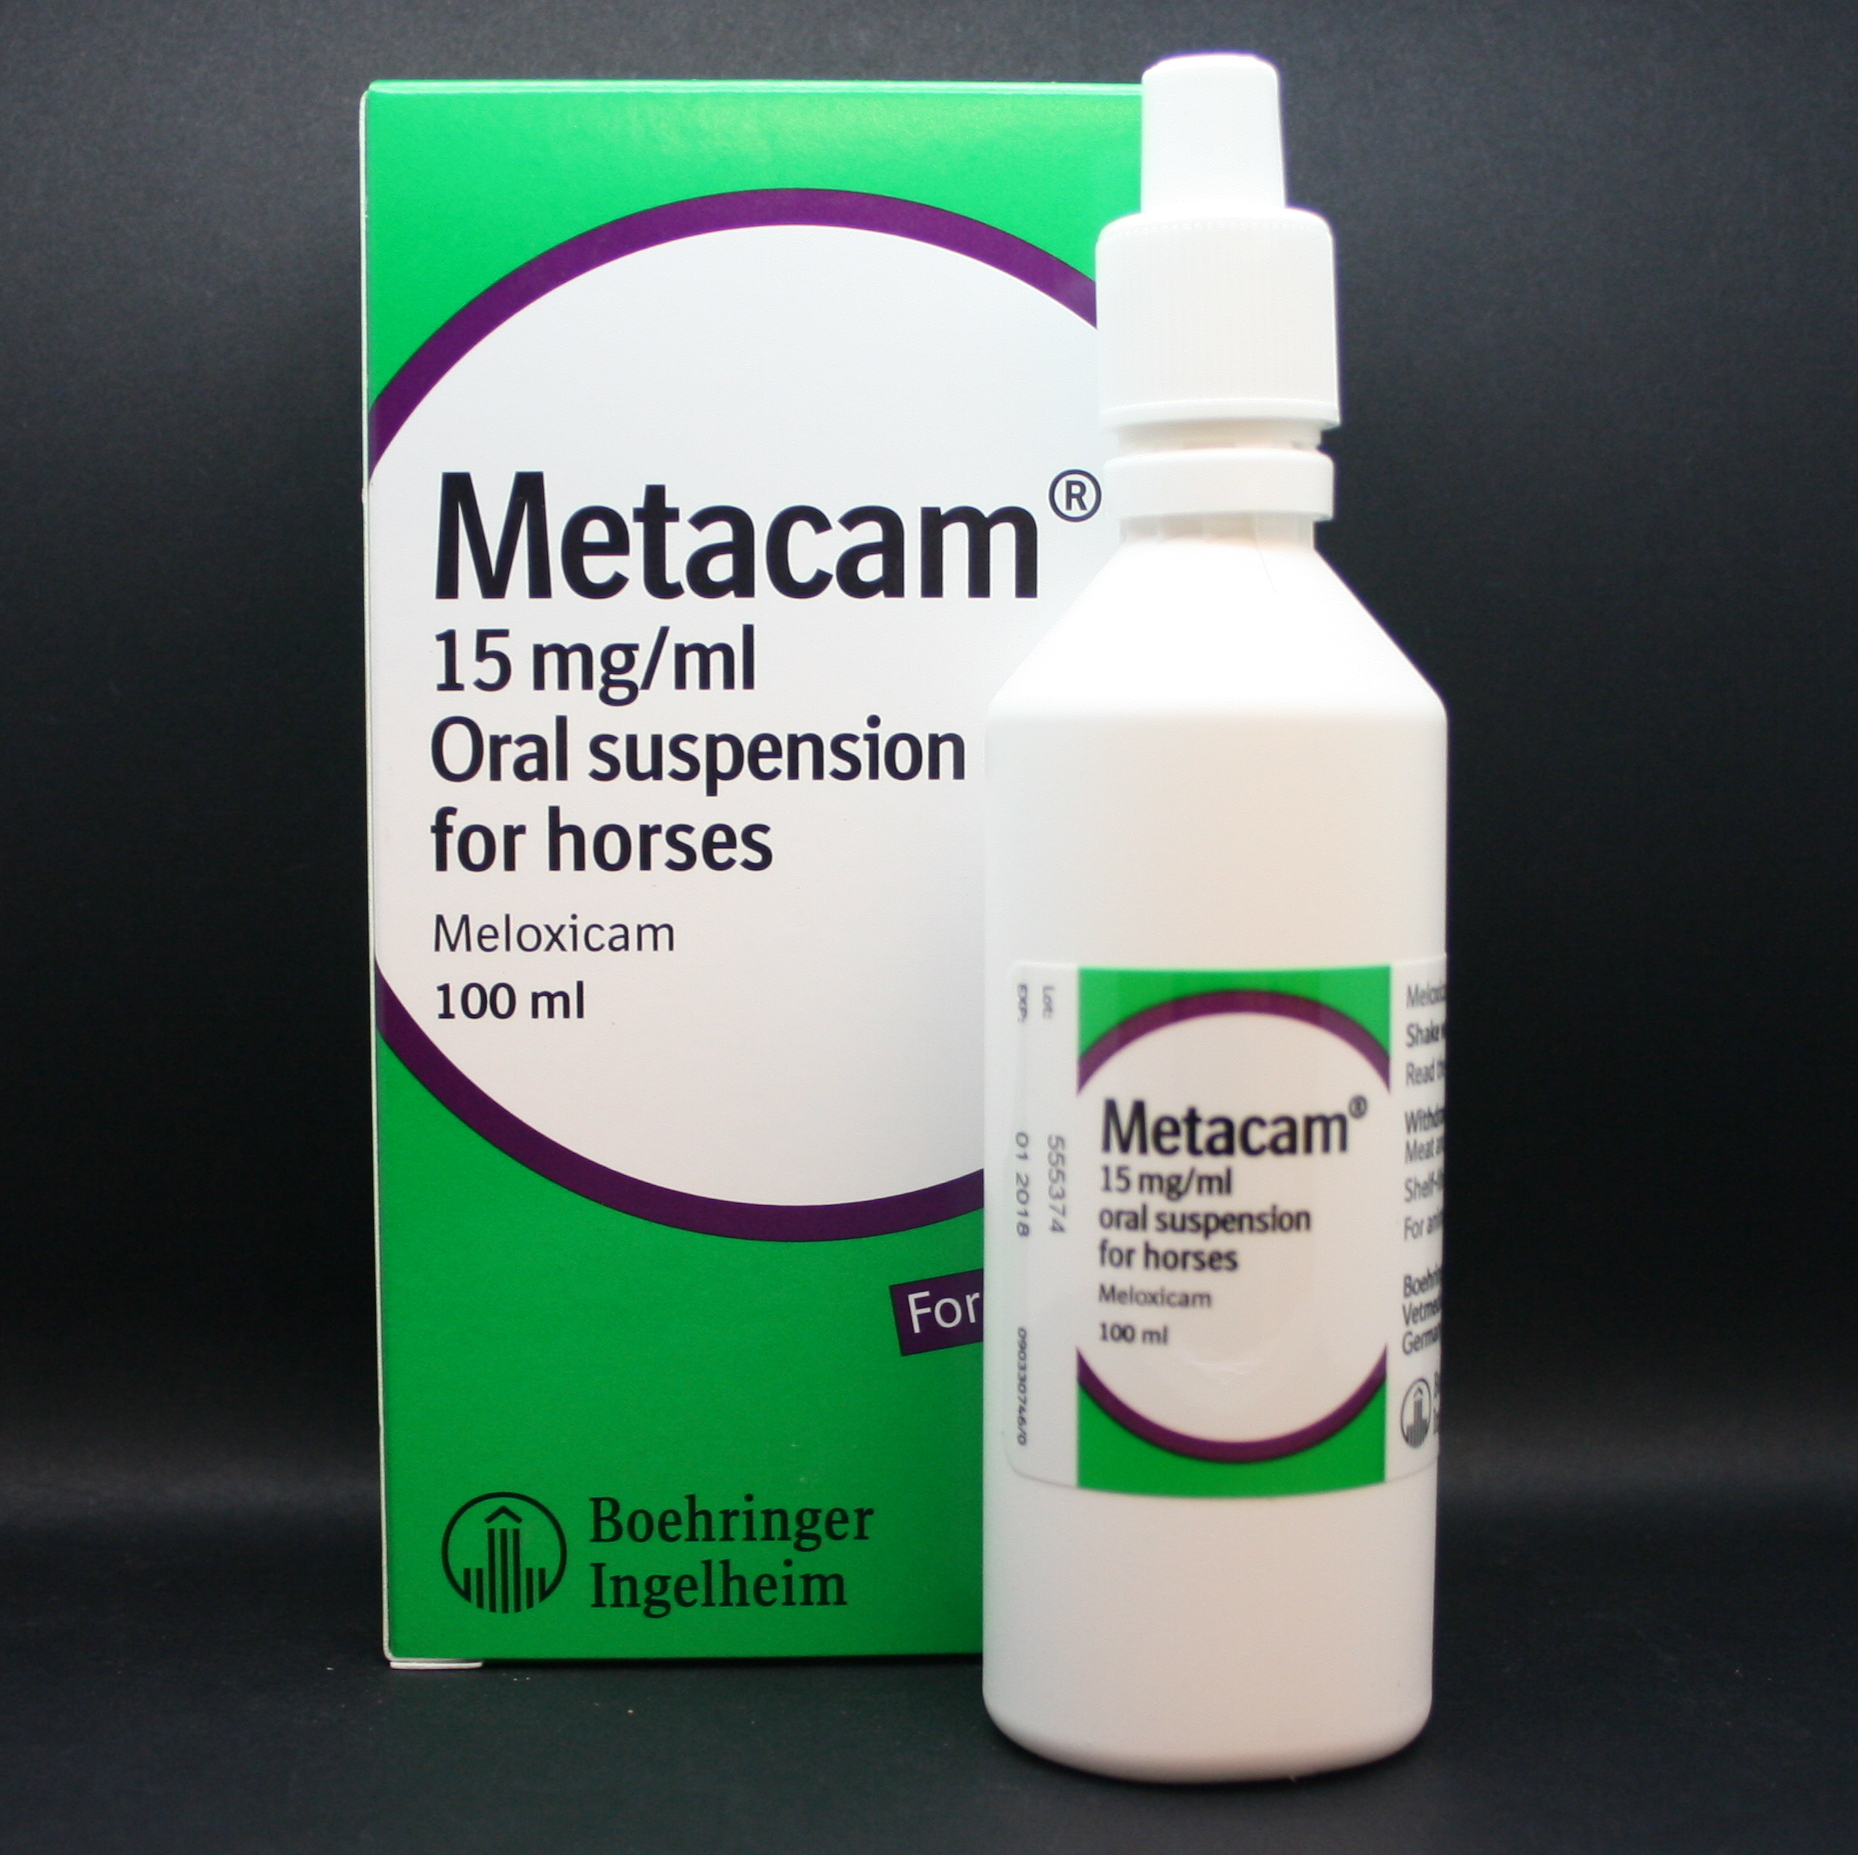 Metacam 15mg/ml Oral suspension